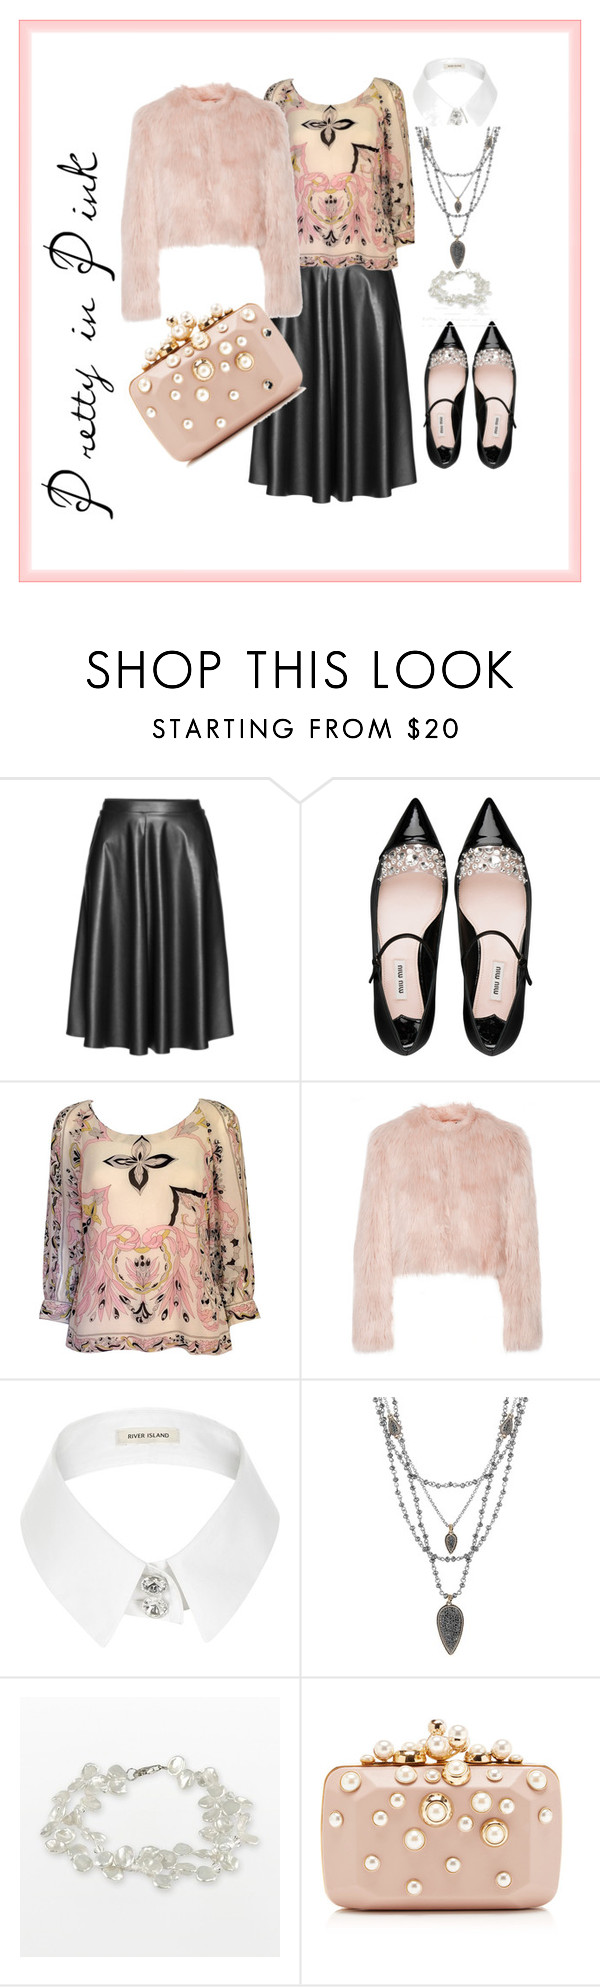 """Pretty in Pink"" by tweedleduh on Polyvore featuring Persona, Miu Miu, Emilio Pucci, RED Valentino, River Island, Lucky Brand, Elie Saab, plussize, plussizefashion and curvesarebeautiful"